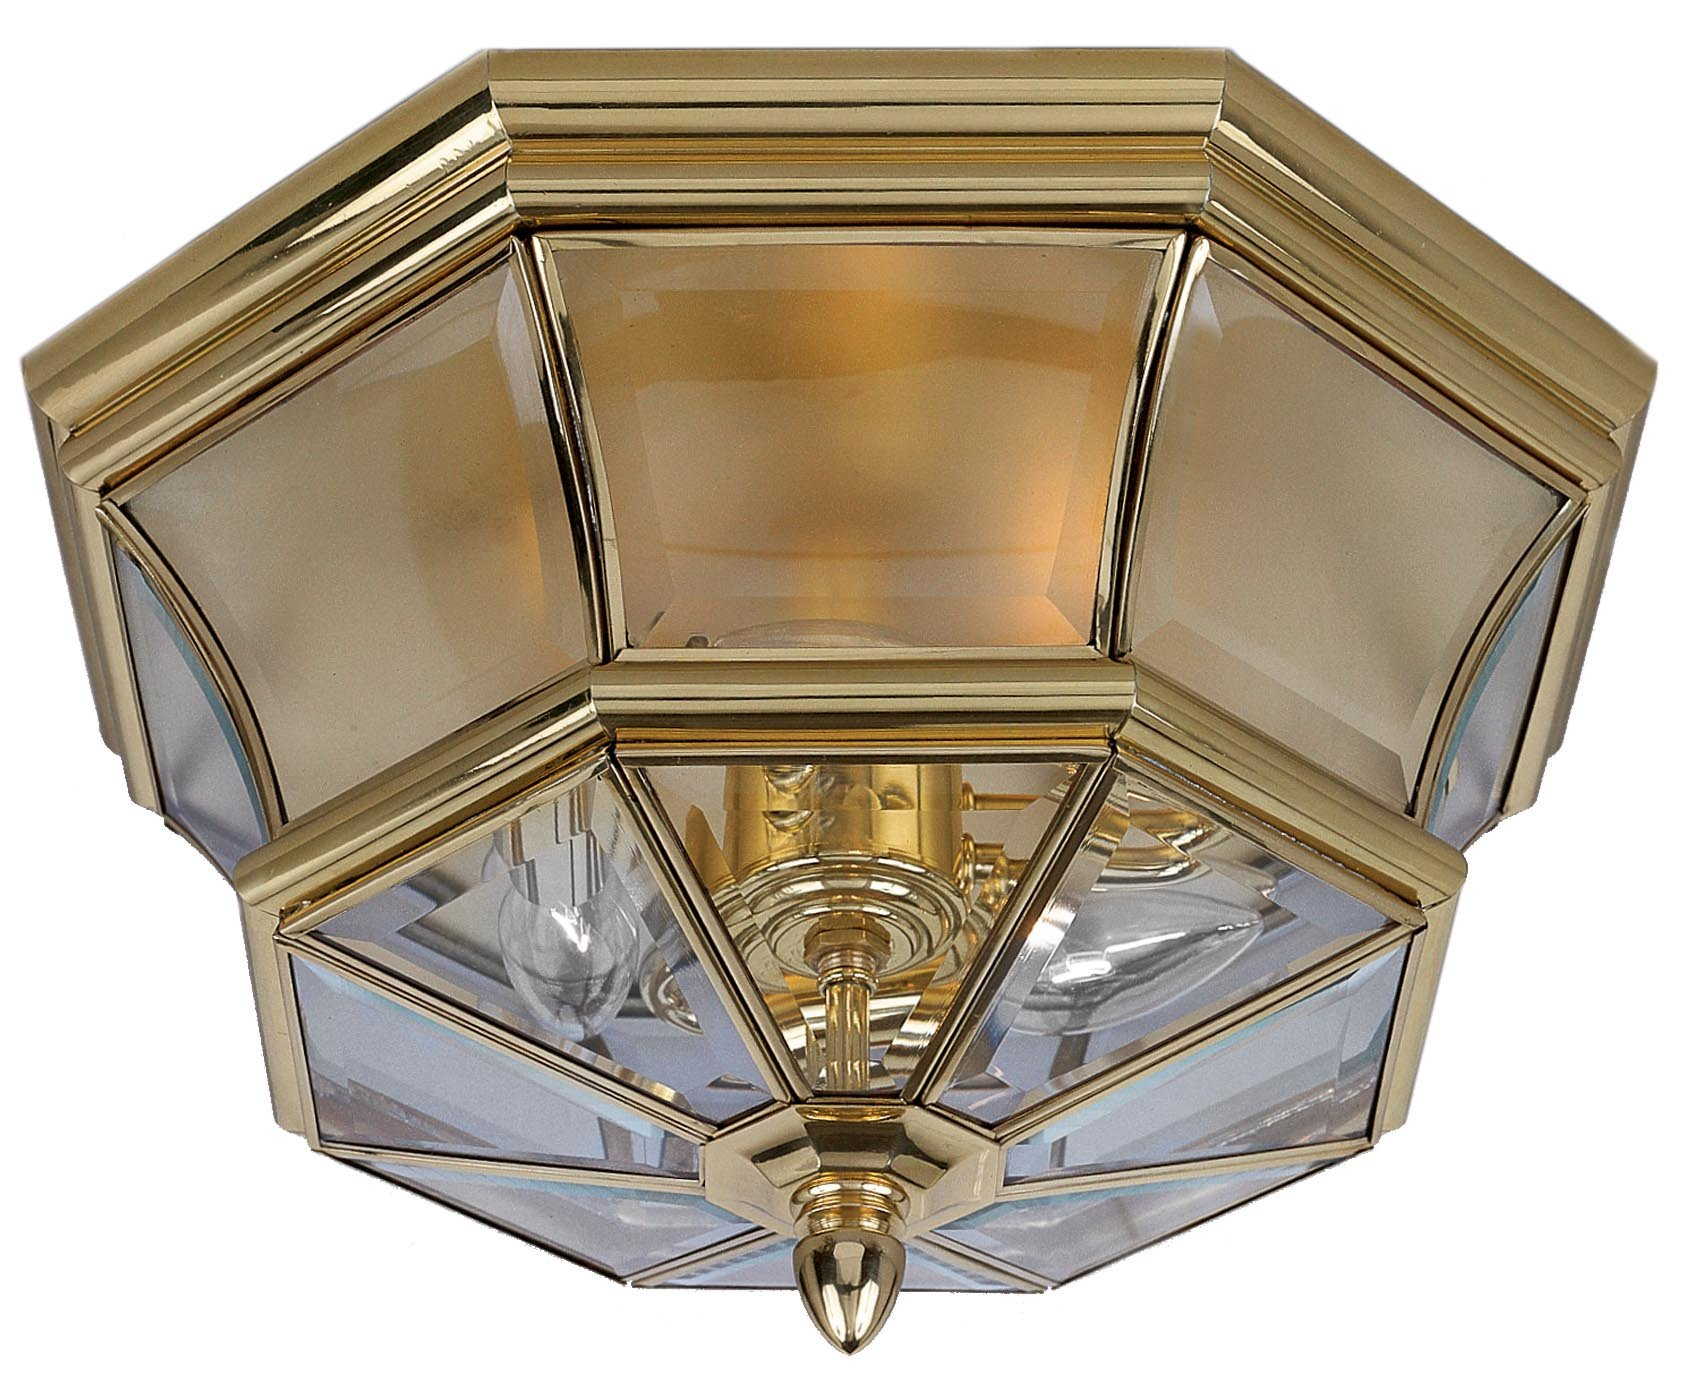 Quoizel NY1794B Newbury Outdoor Flush Mount Ceiling Lighting, 2-Light, 120 Watts, Polished Brass (8'' H x 15'' W) by Quoizel